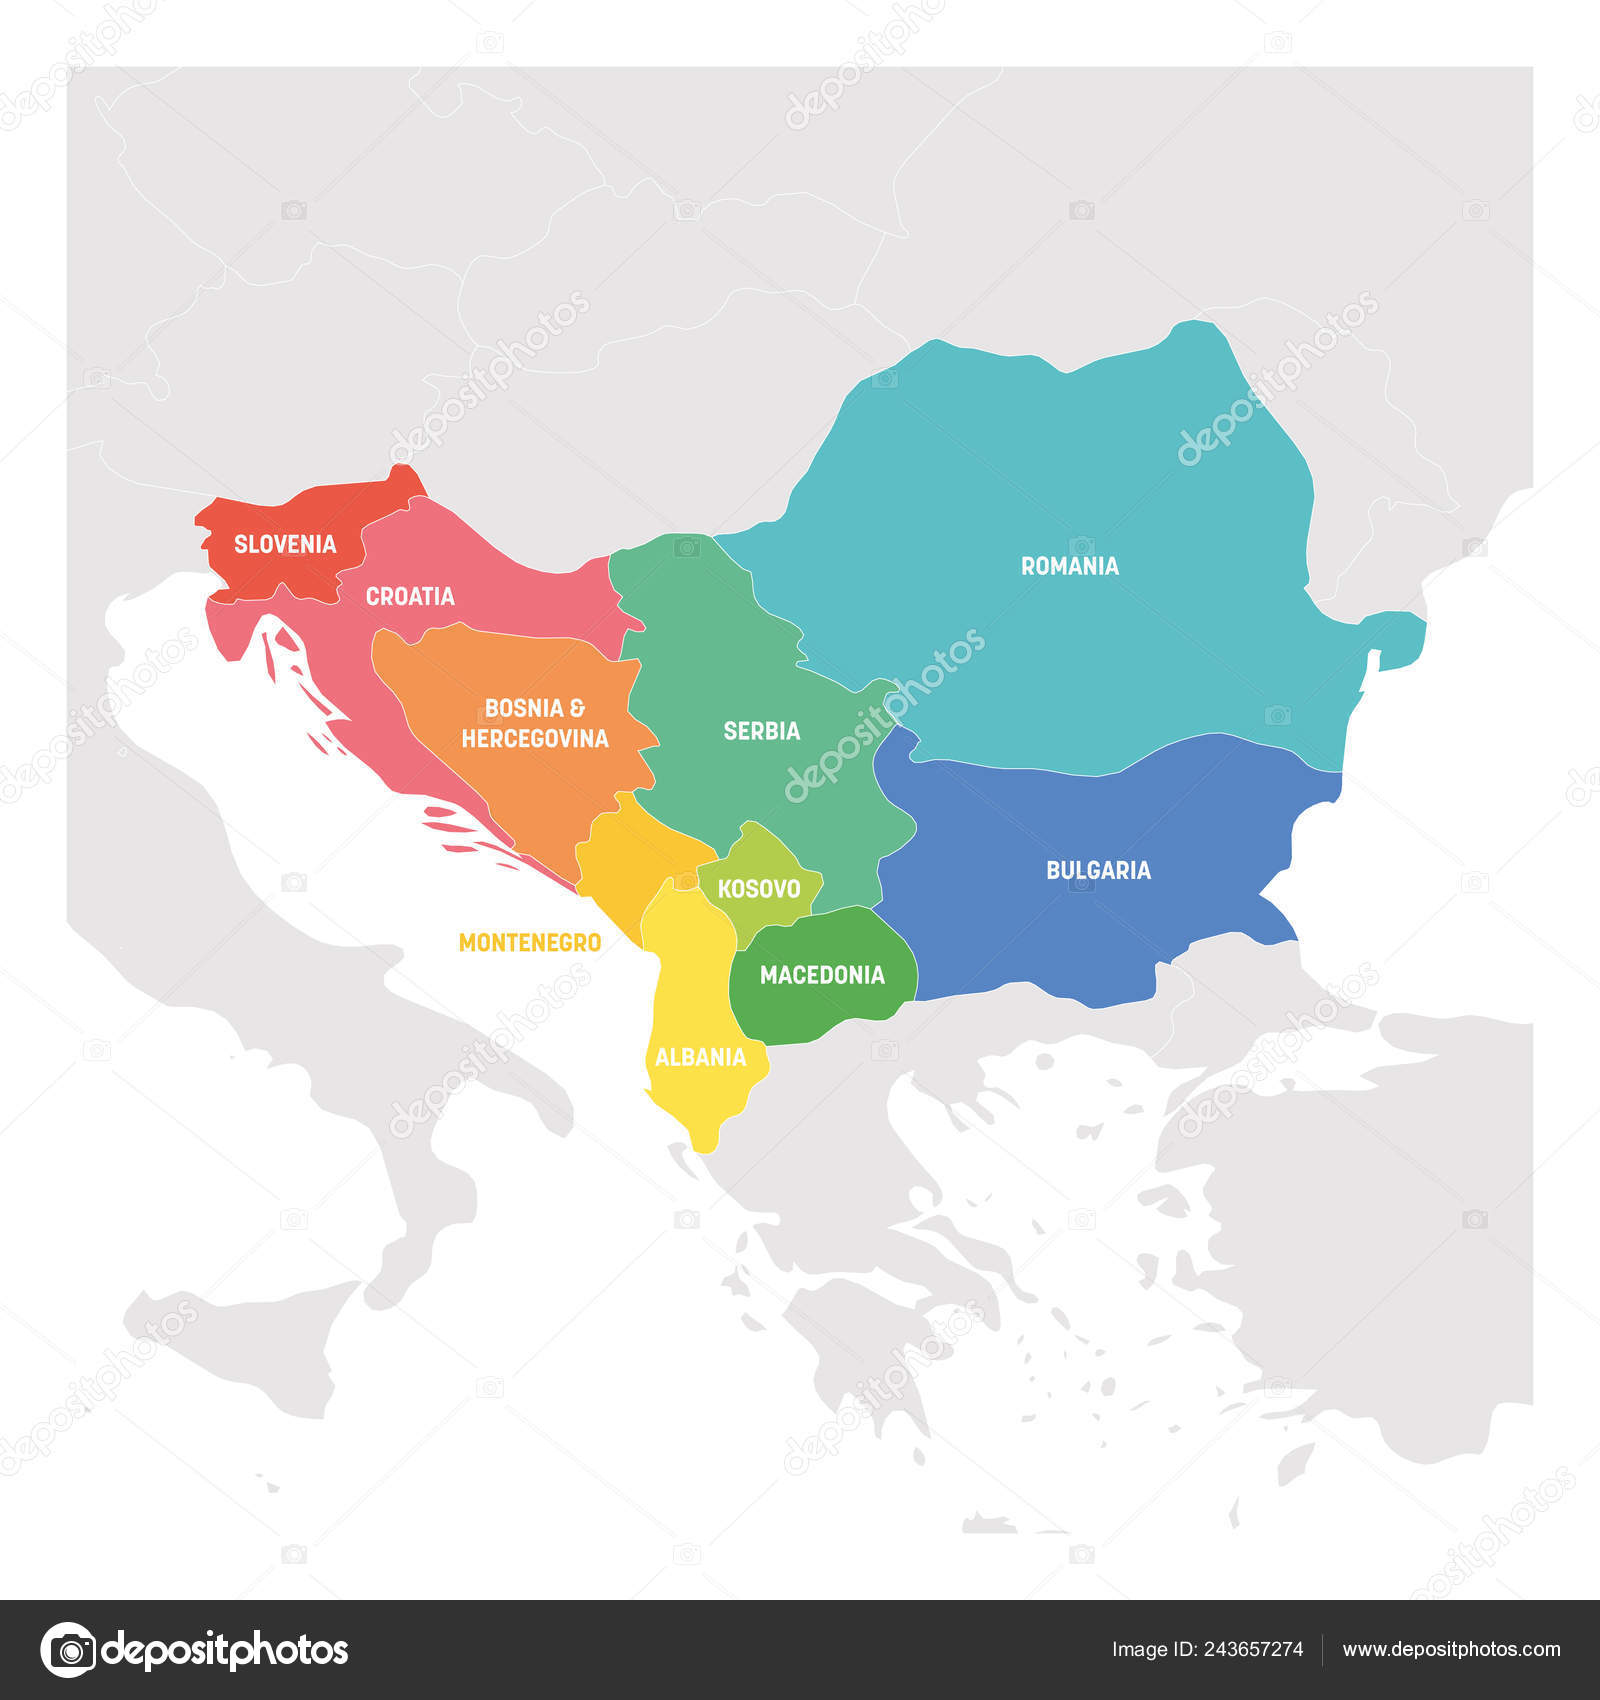 Southeast Europe Region Colorful Map Of Countries Of Balkan